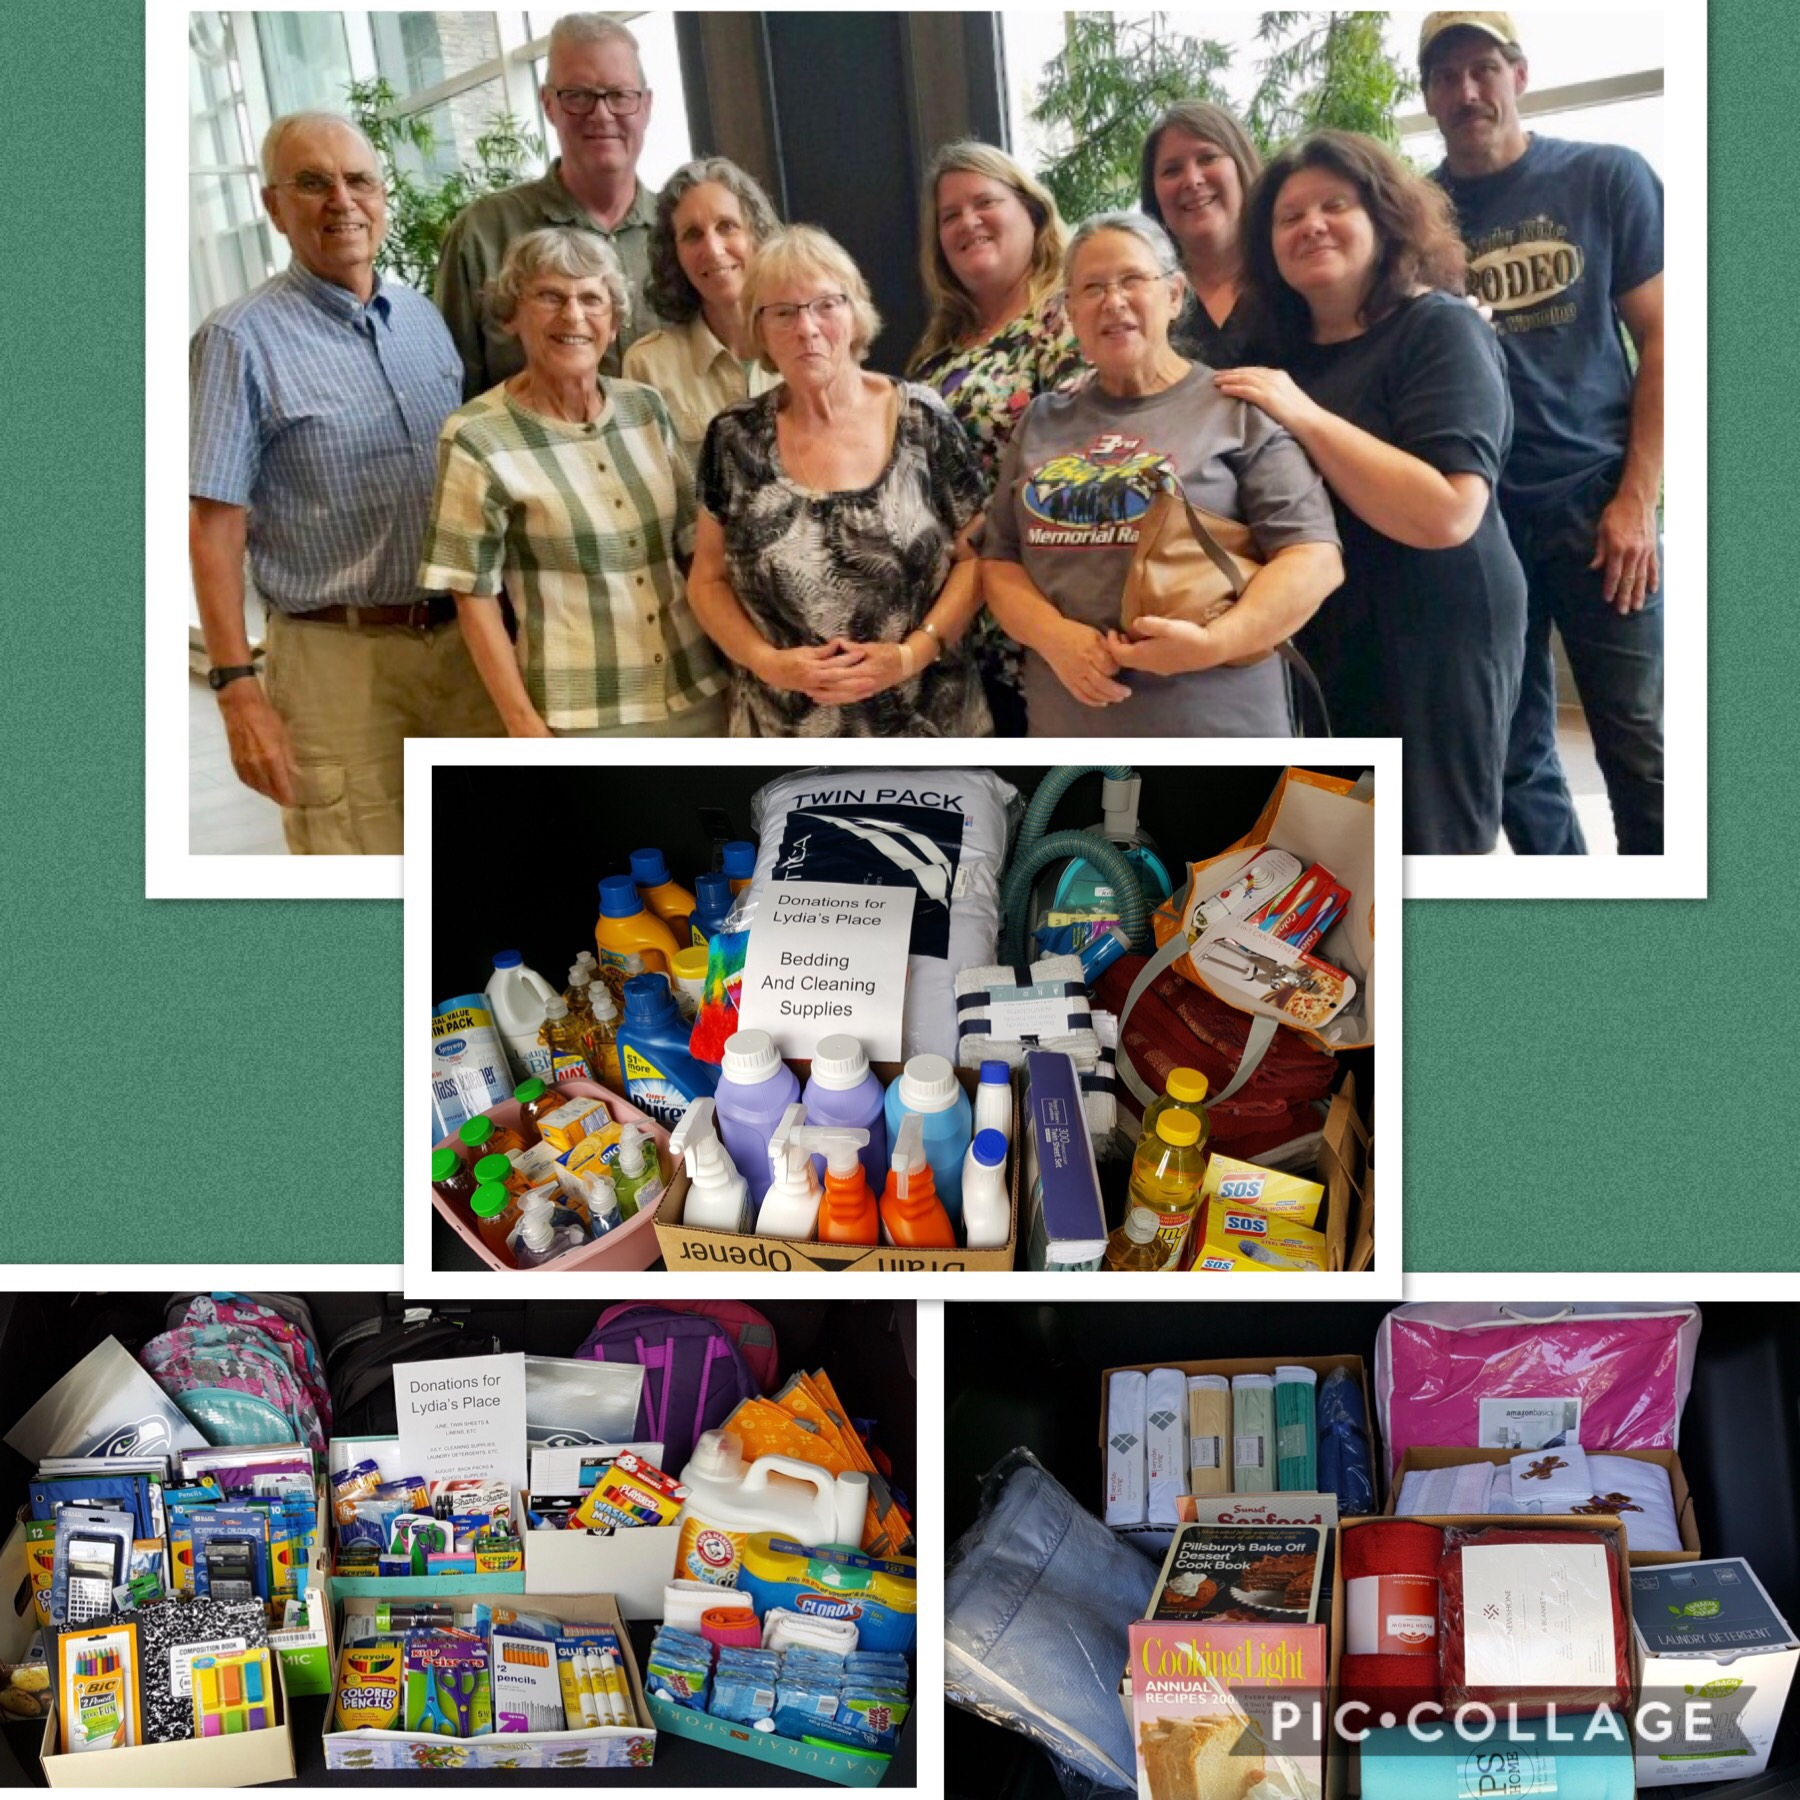 This small group gathered items requested by Lydia Place for   Family Welcome Baskets  to support families transitioning from homelessness to transitional housing.